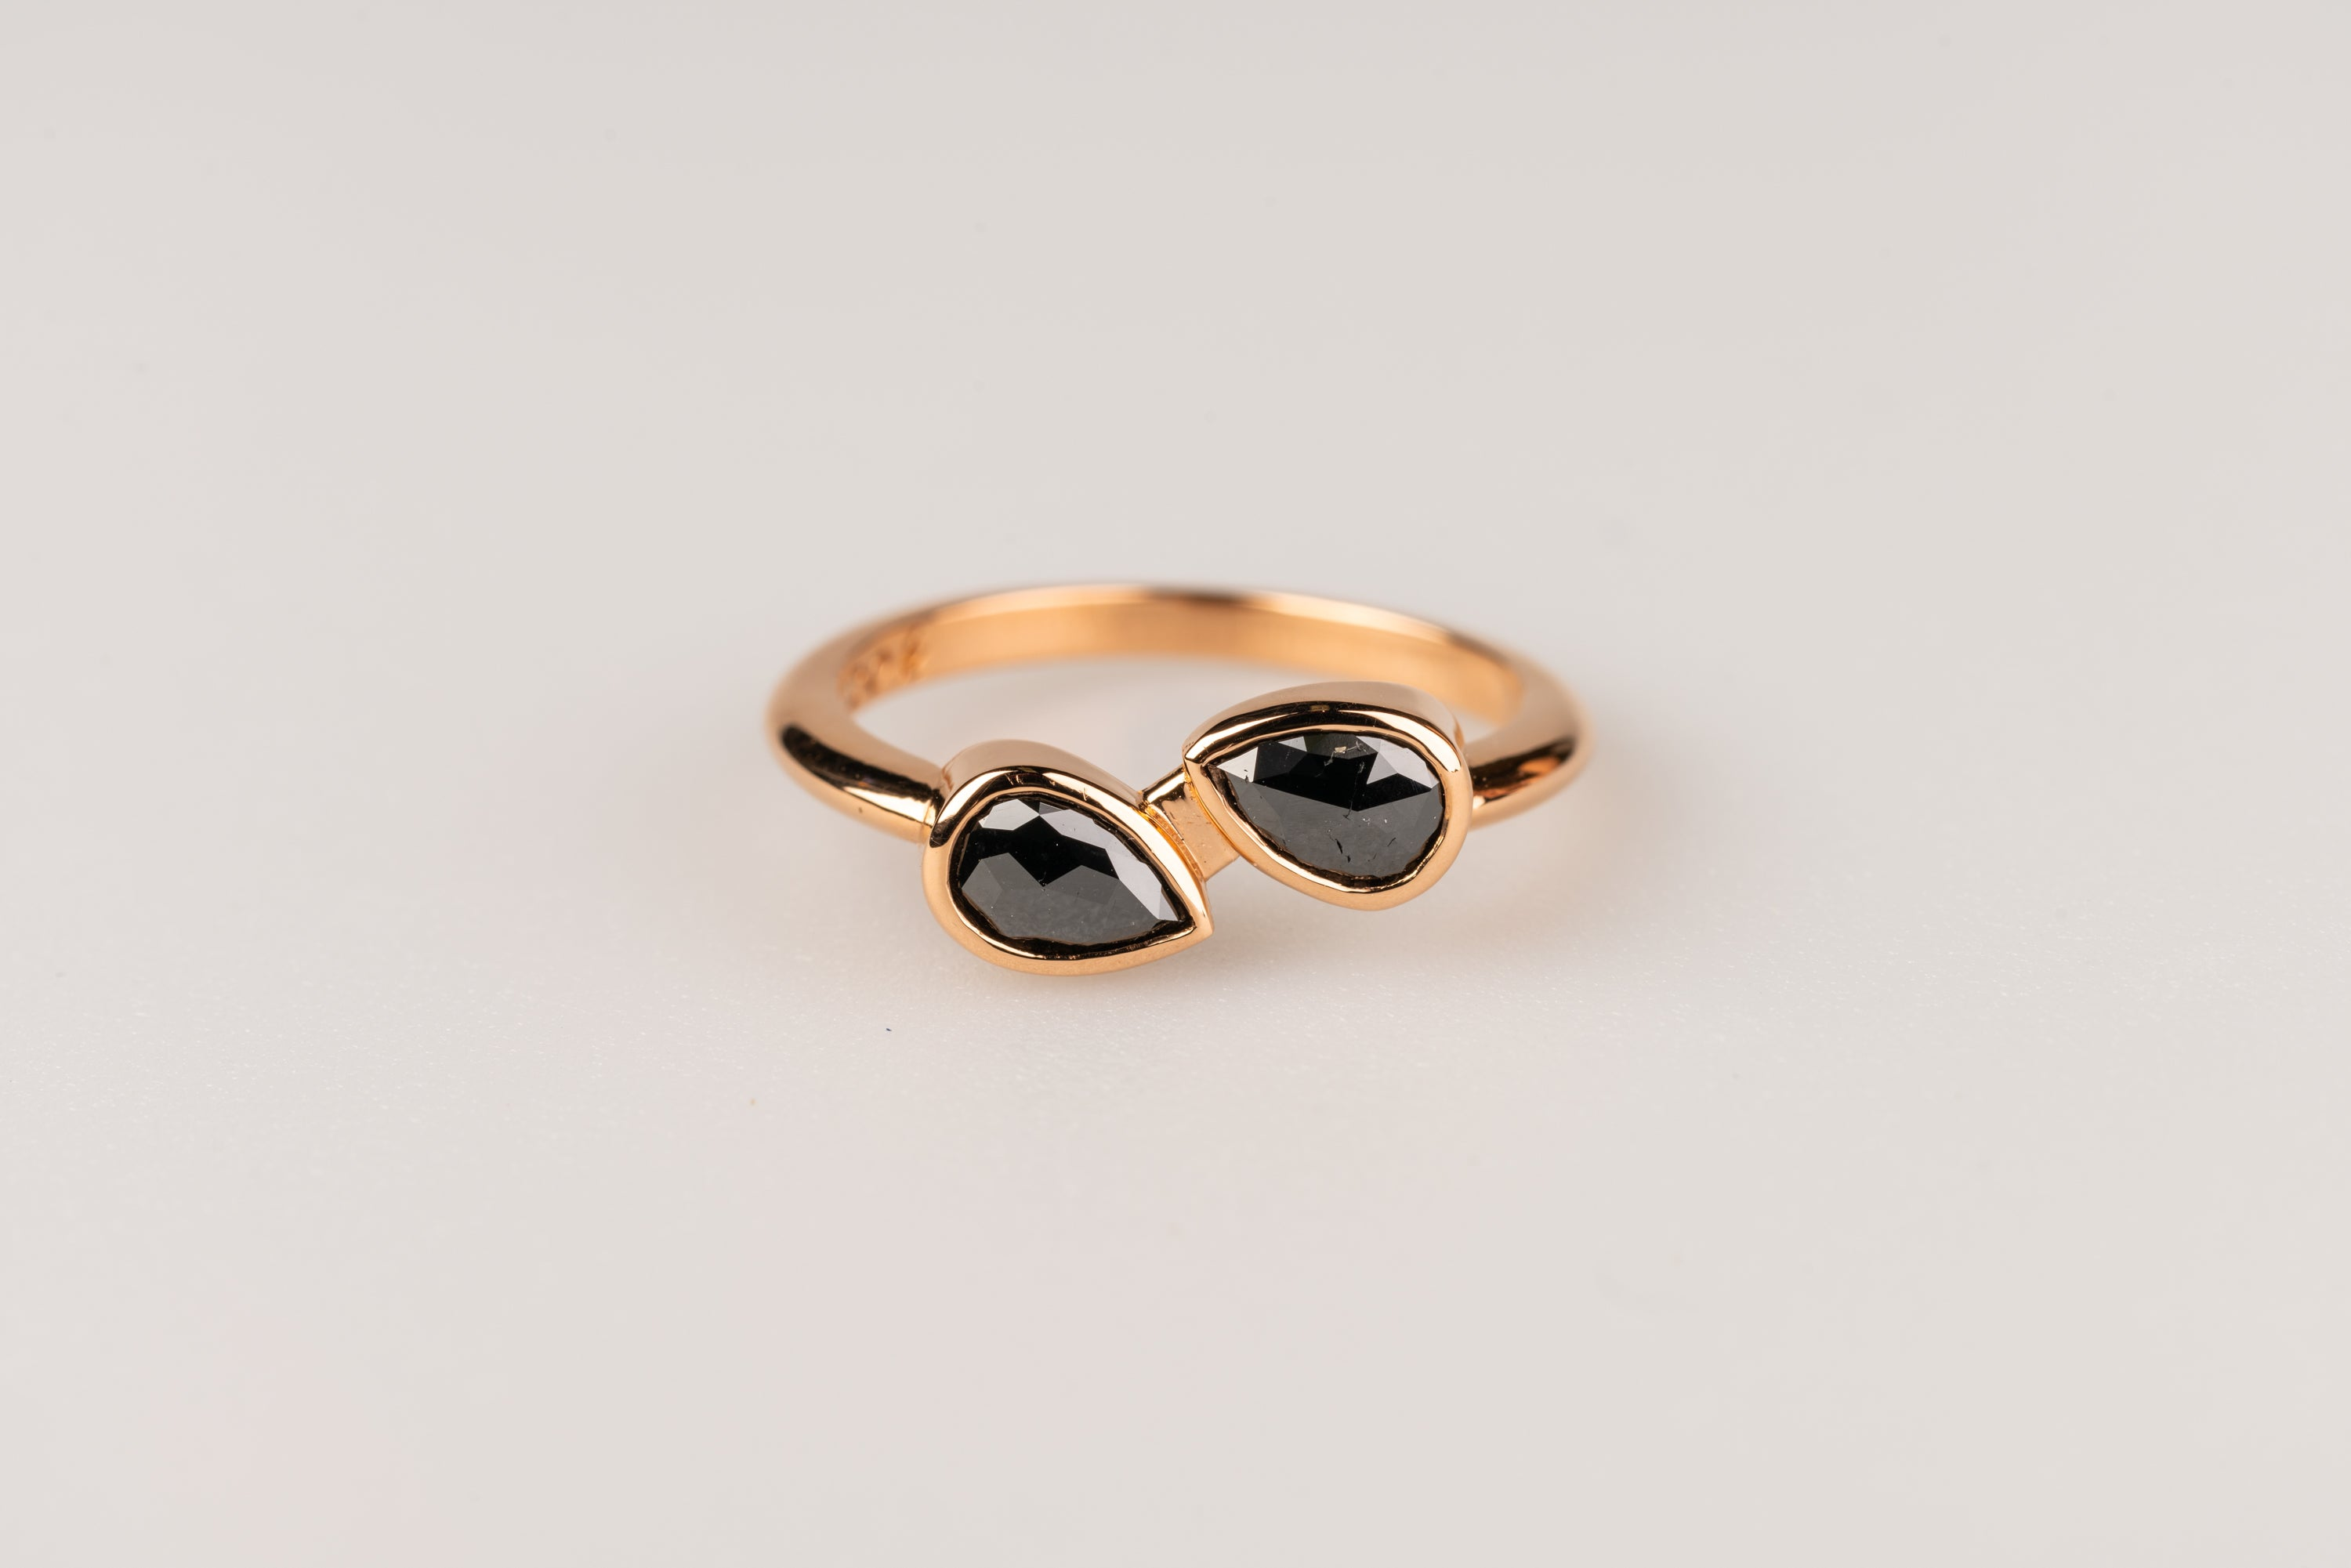 Double Pear Shaped Black Diamond Ring in 20k Rose Gold